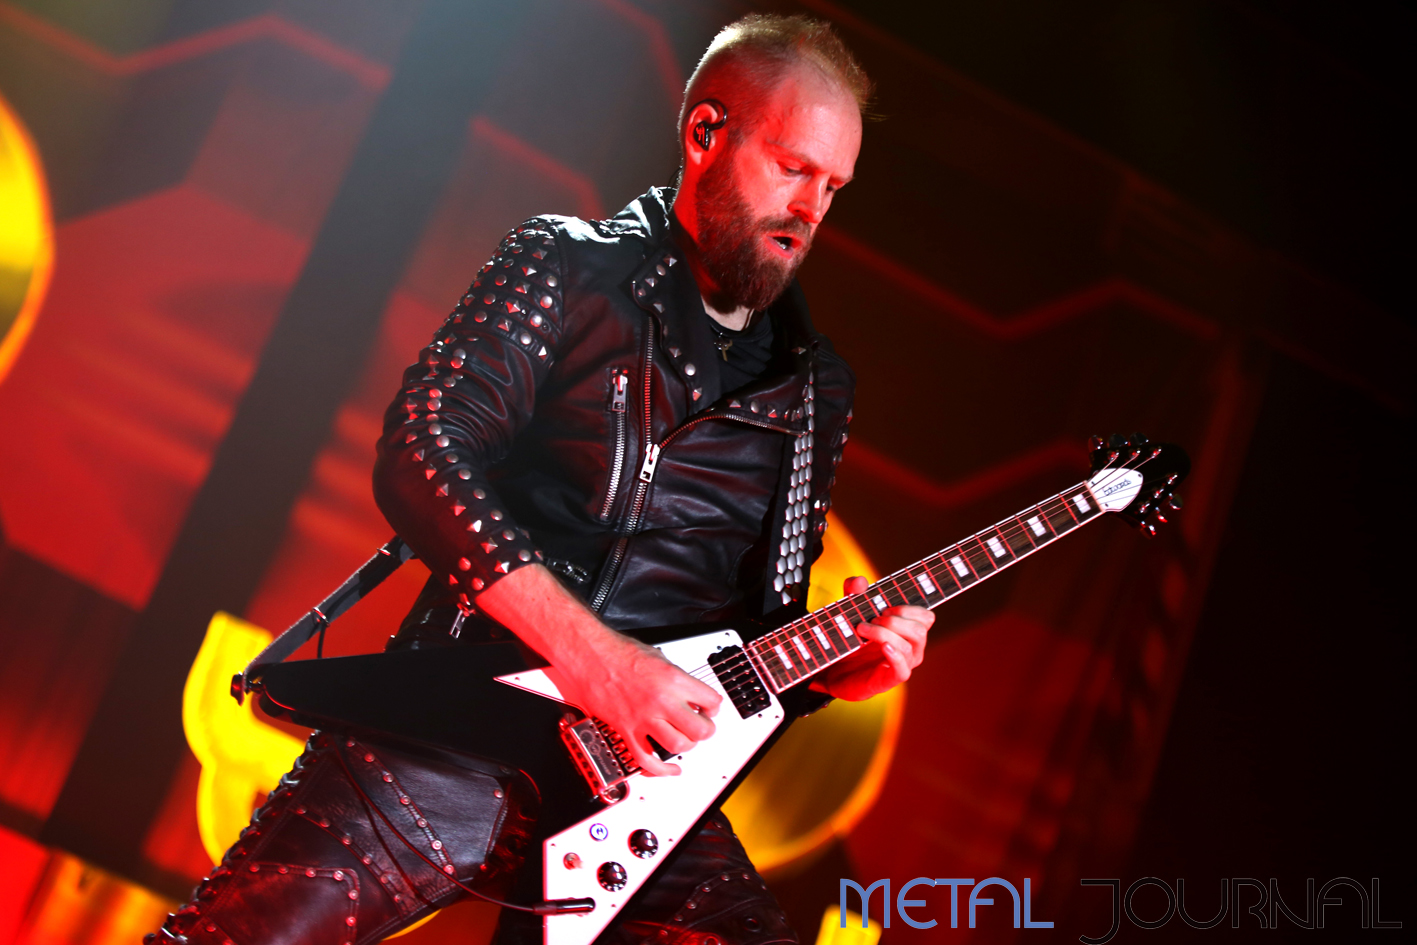 judas priest - metal journal barakaldo 2018 pic 10